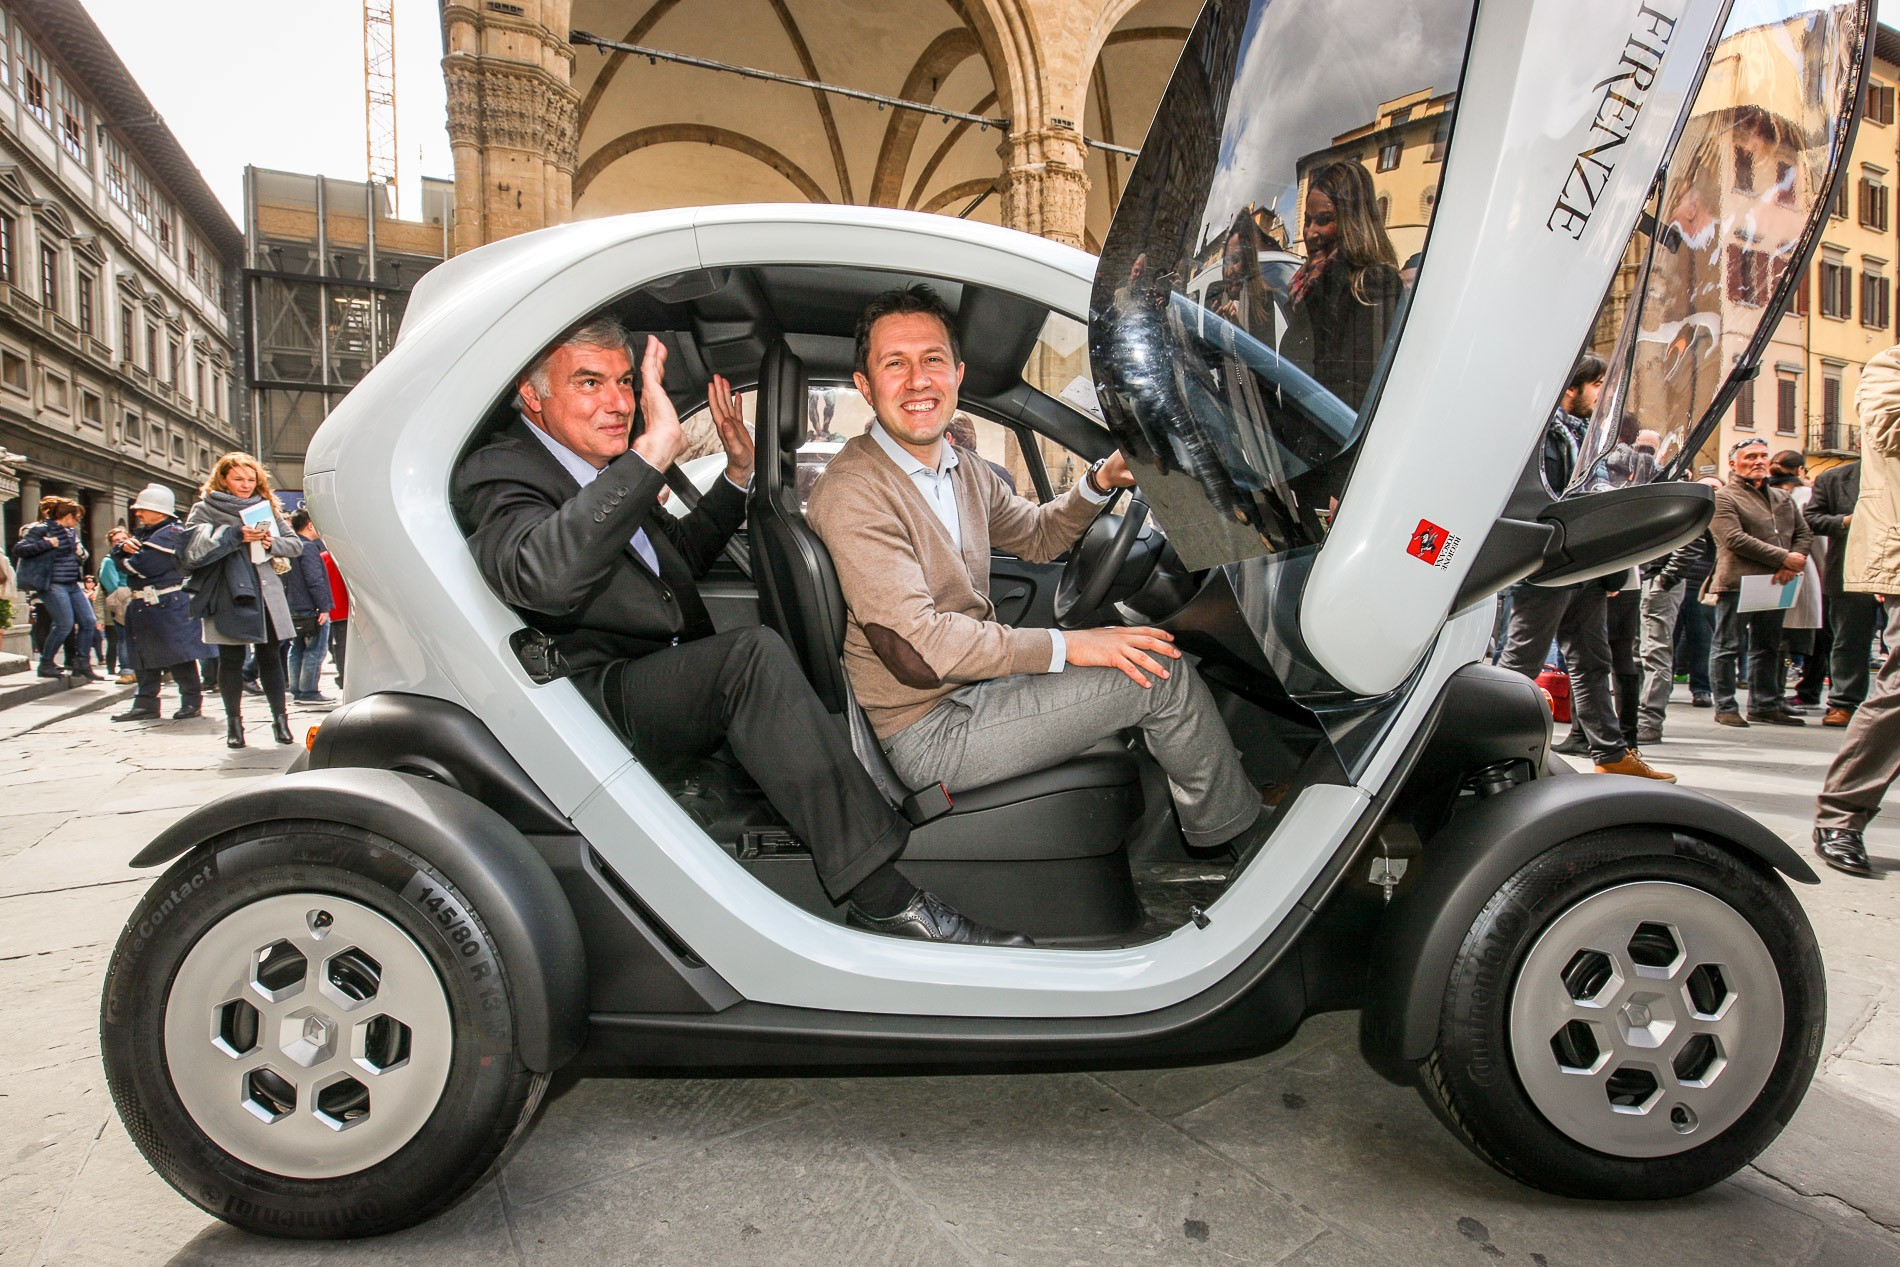 renault livre son 15 000e twizy en italie. Black Bedroom Furniture Sets. Home Design Ideas